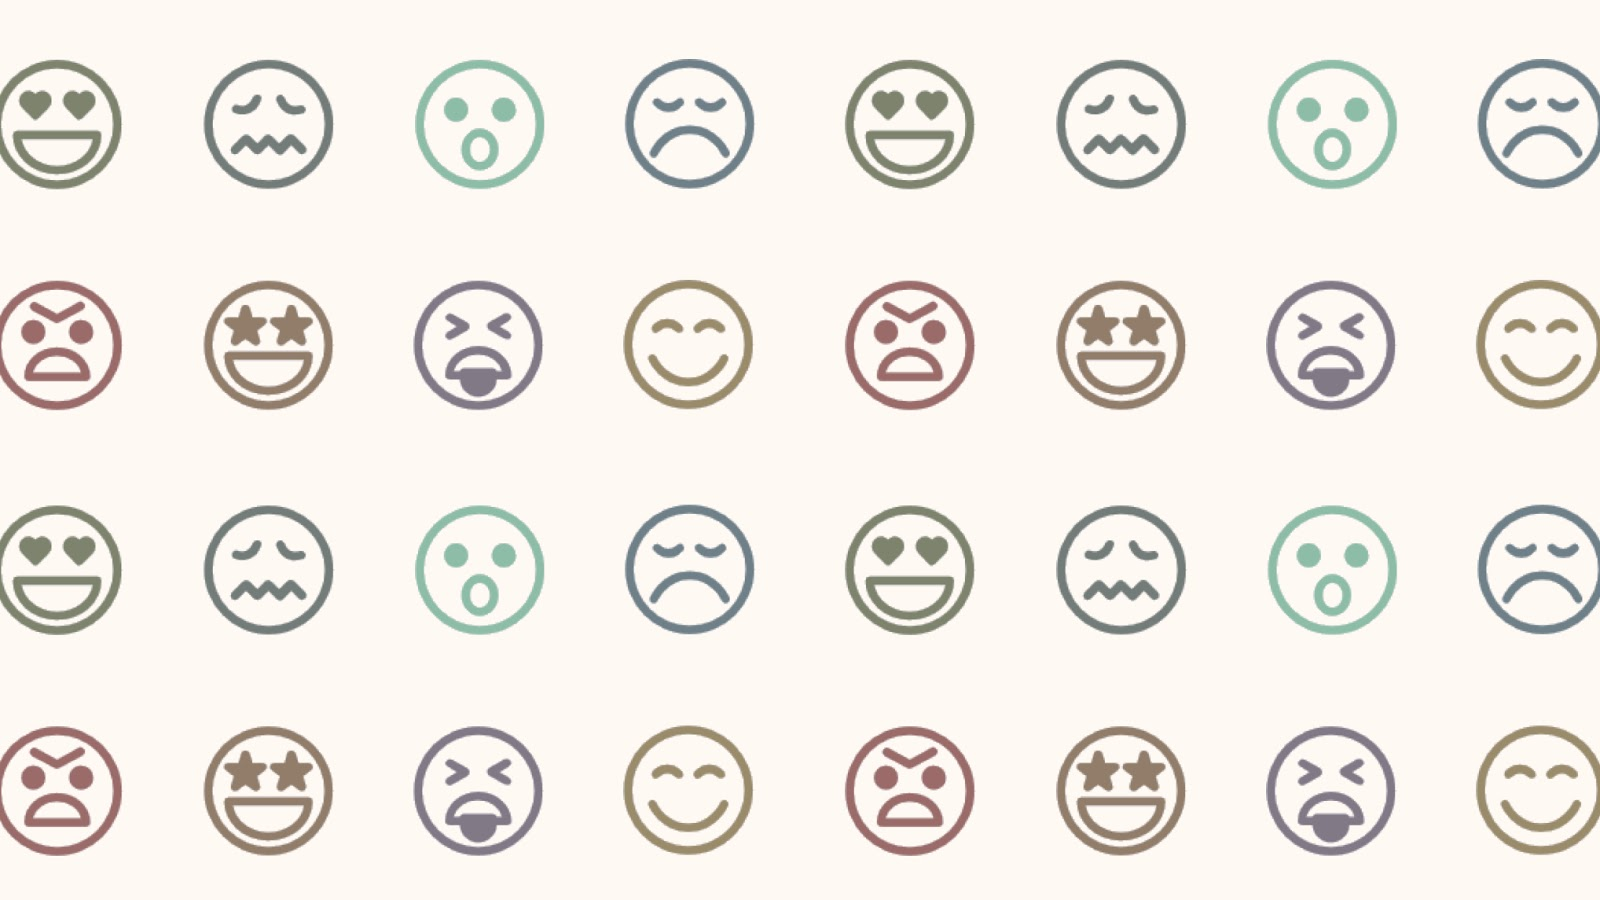 Nuvi's social customer experience management solutions help discover emotion and customer sentiment. This image displays that with four rows of eight emojis.